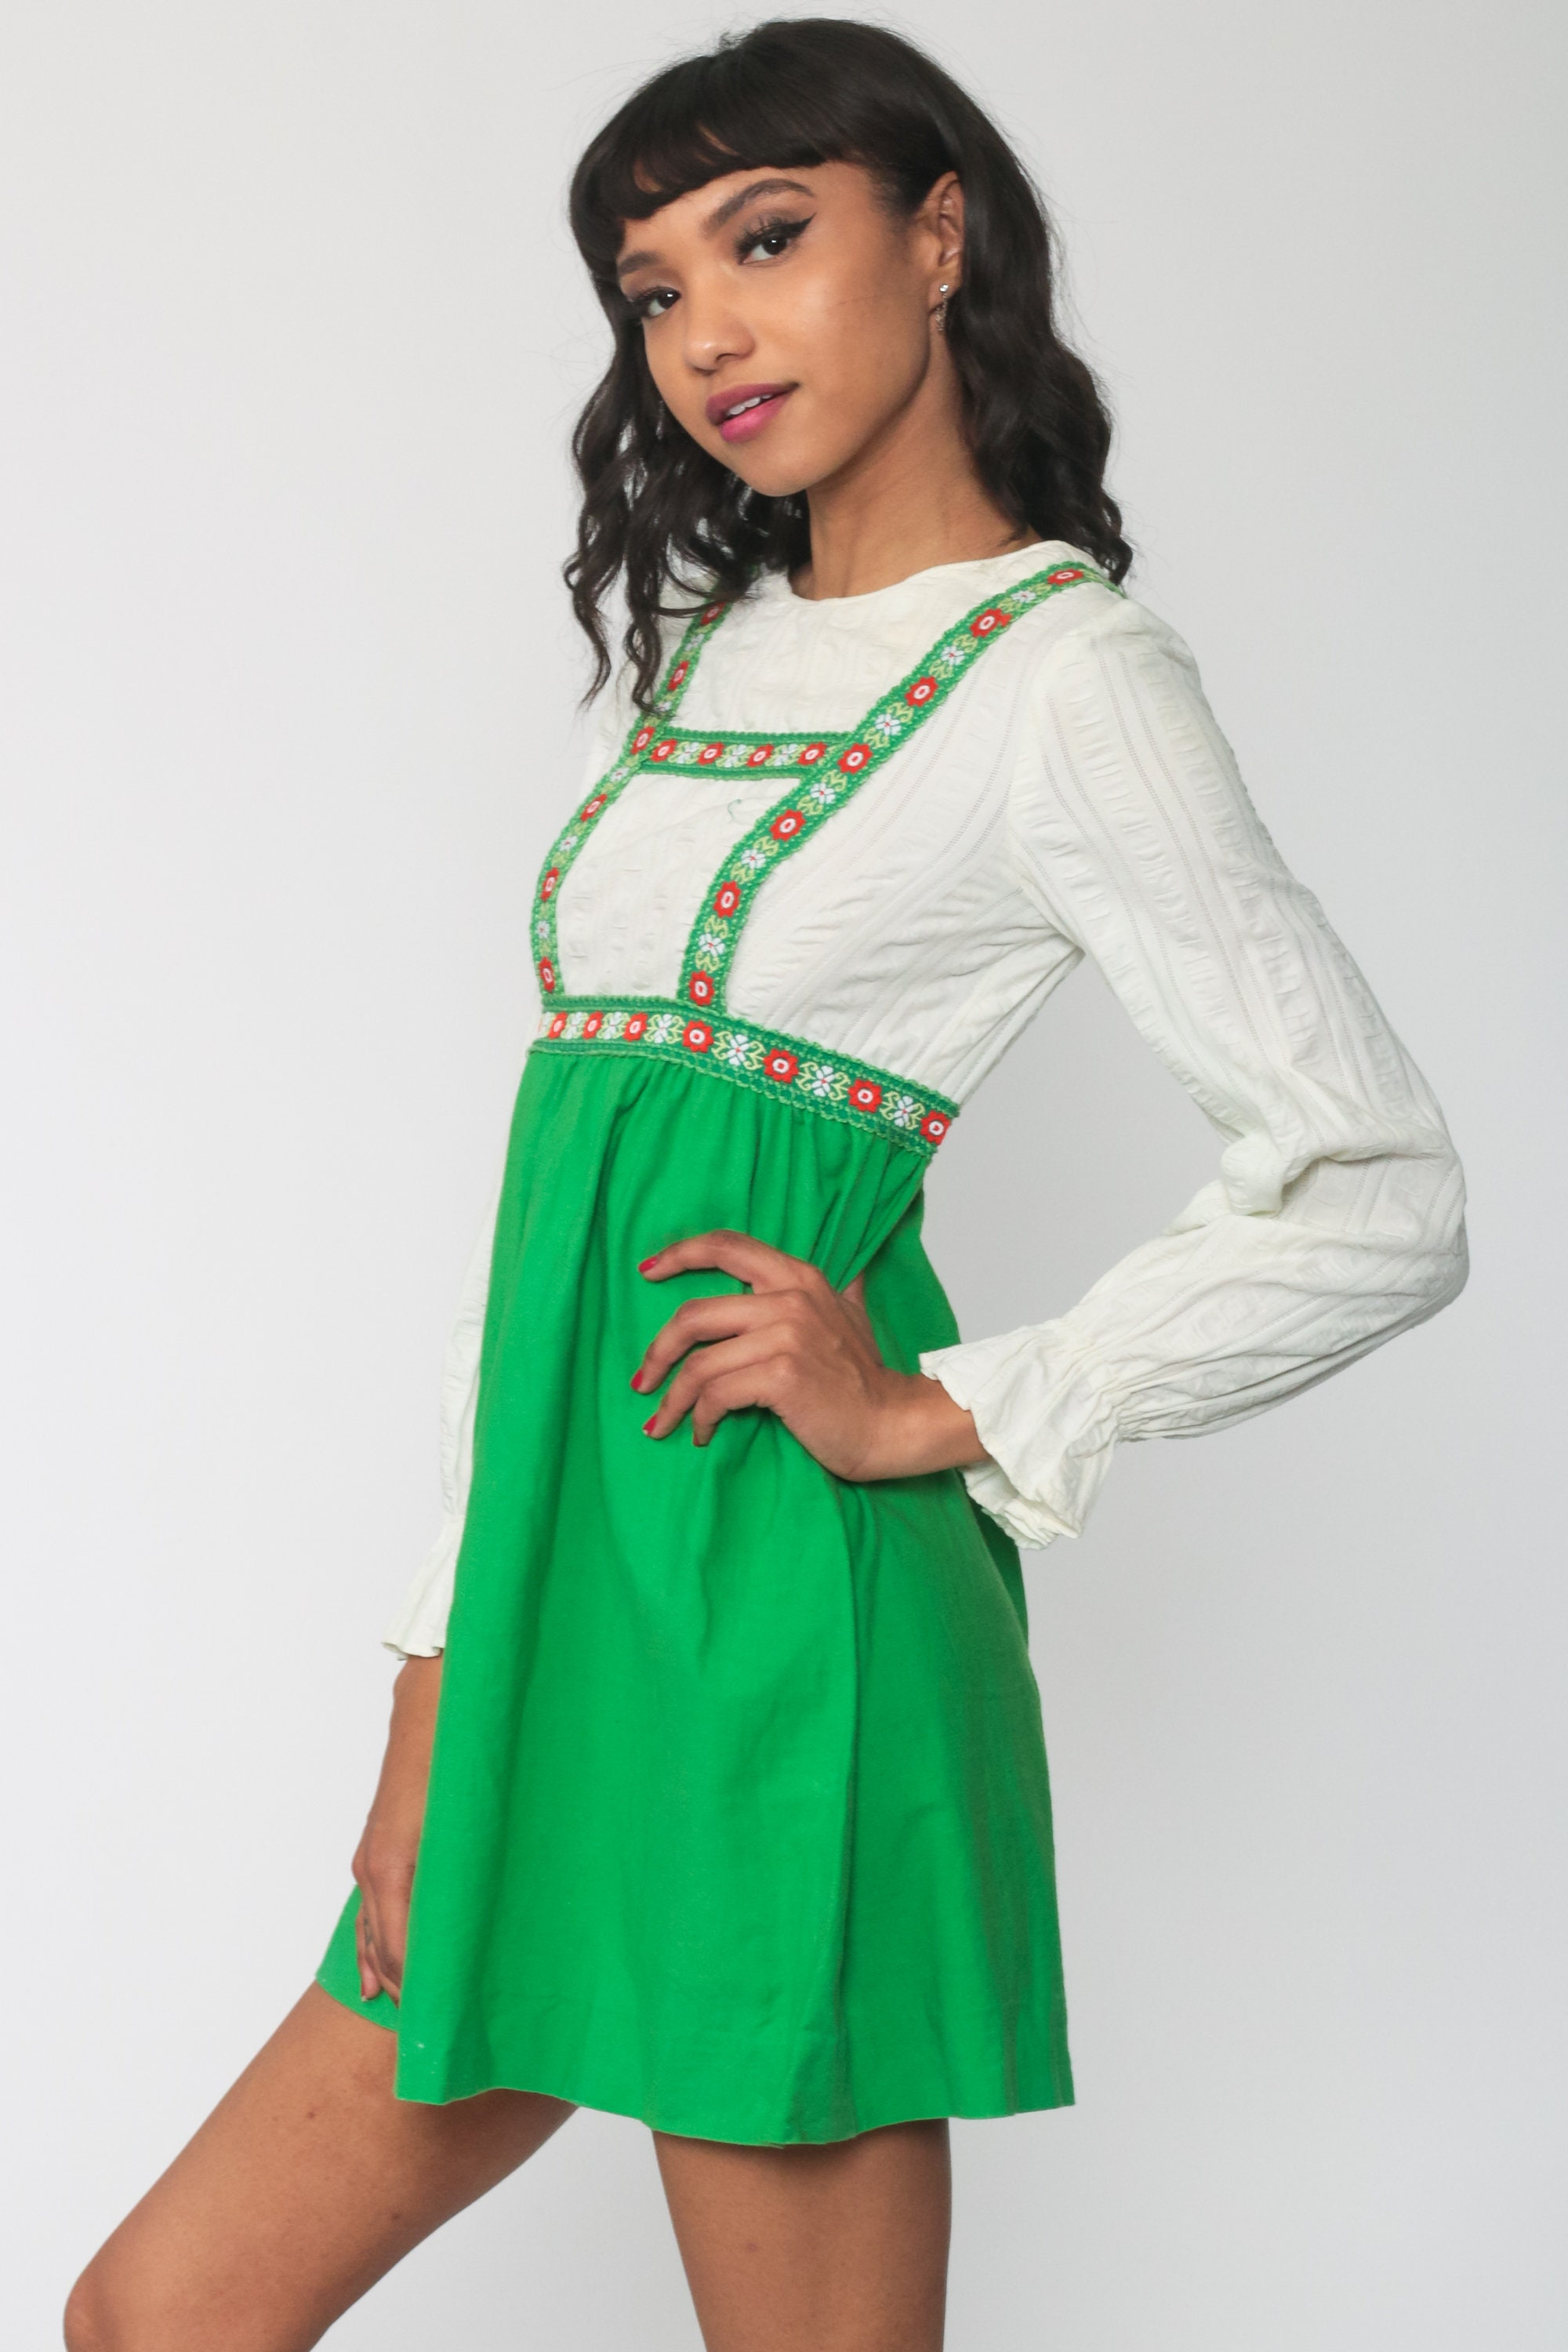 1960s Mini Skirt  60s Blue Green Floral Lace Style Embroidered Short Skirt  Women\u2019s Small